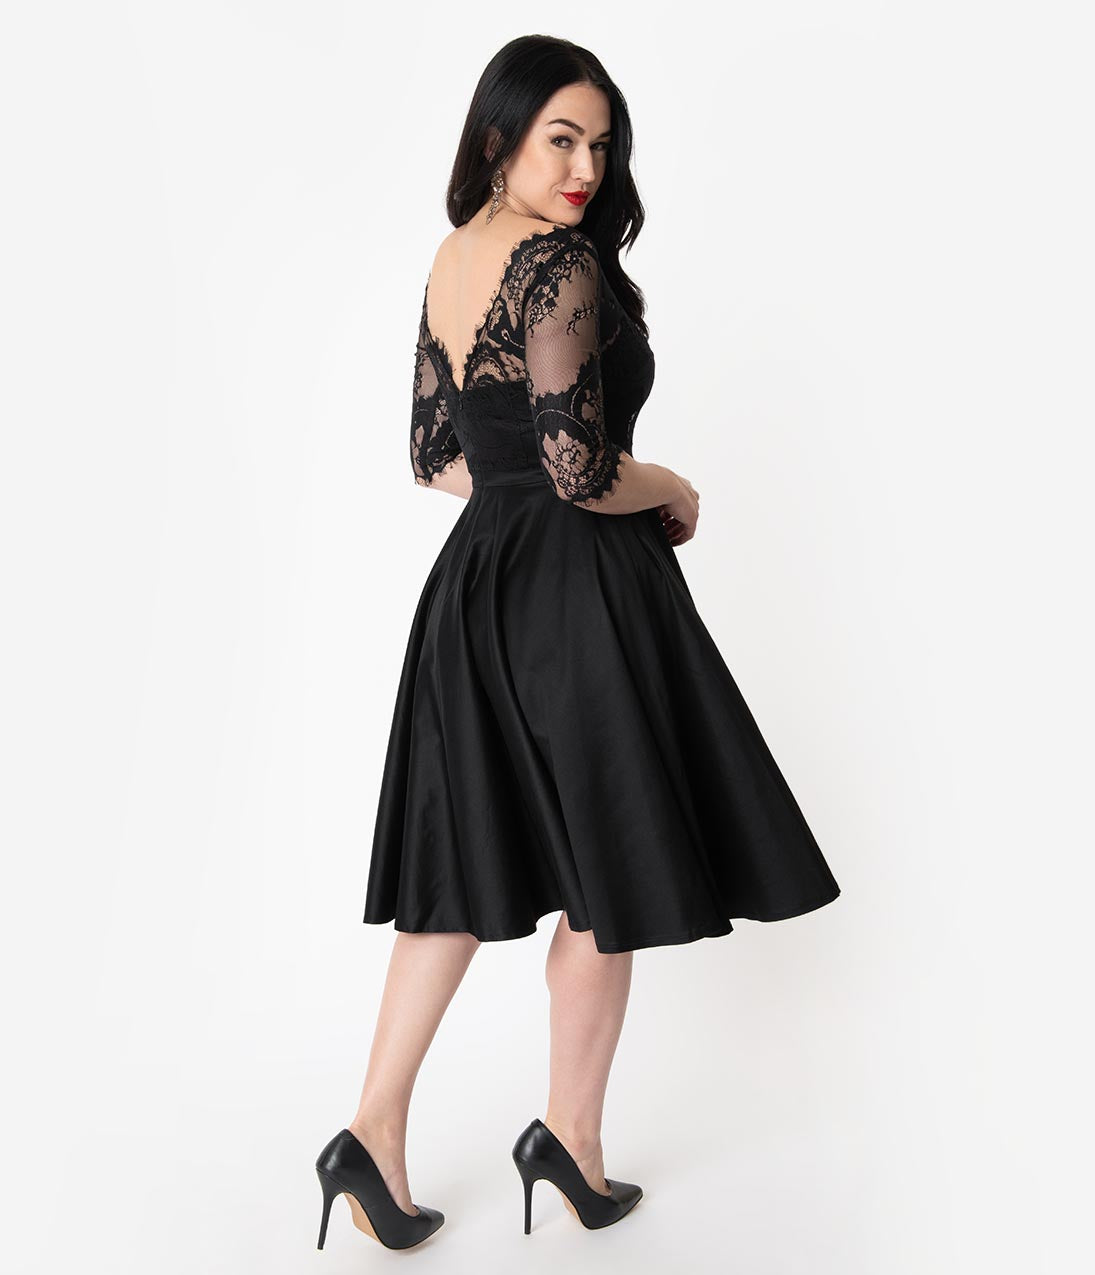 648bcecd36 Cocktail Dresses - Vintage   Retro Party   Holiday Dresses – Unique ...